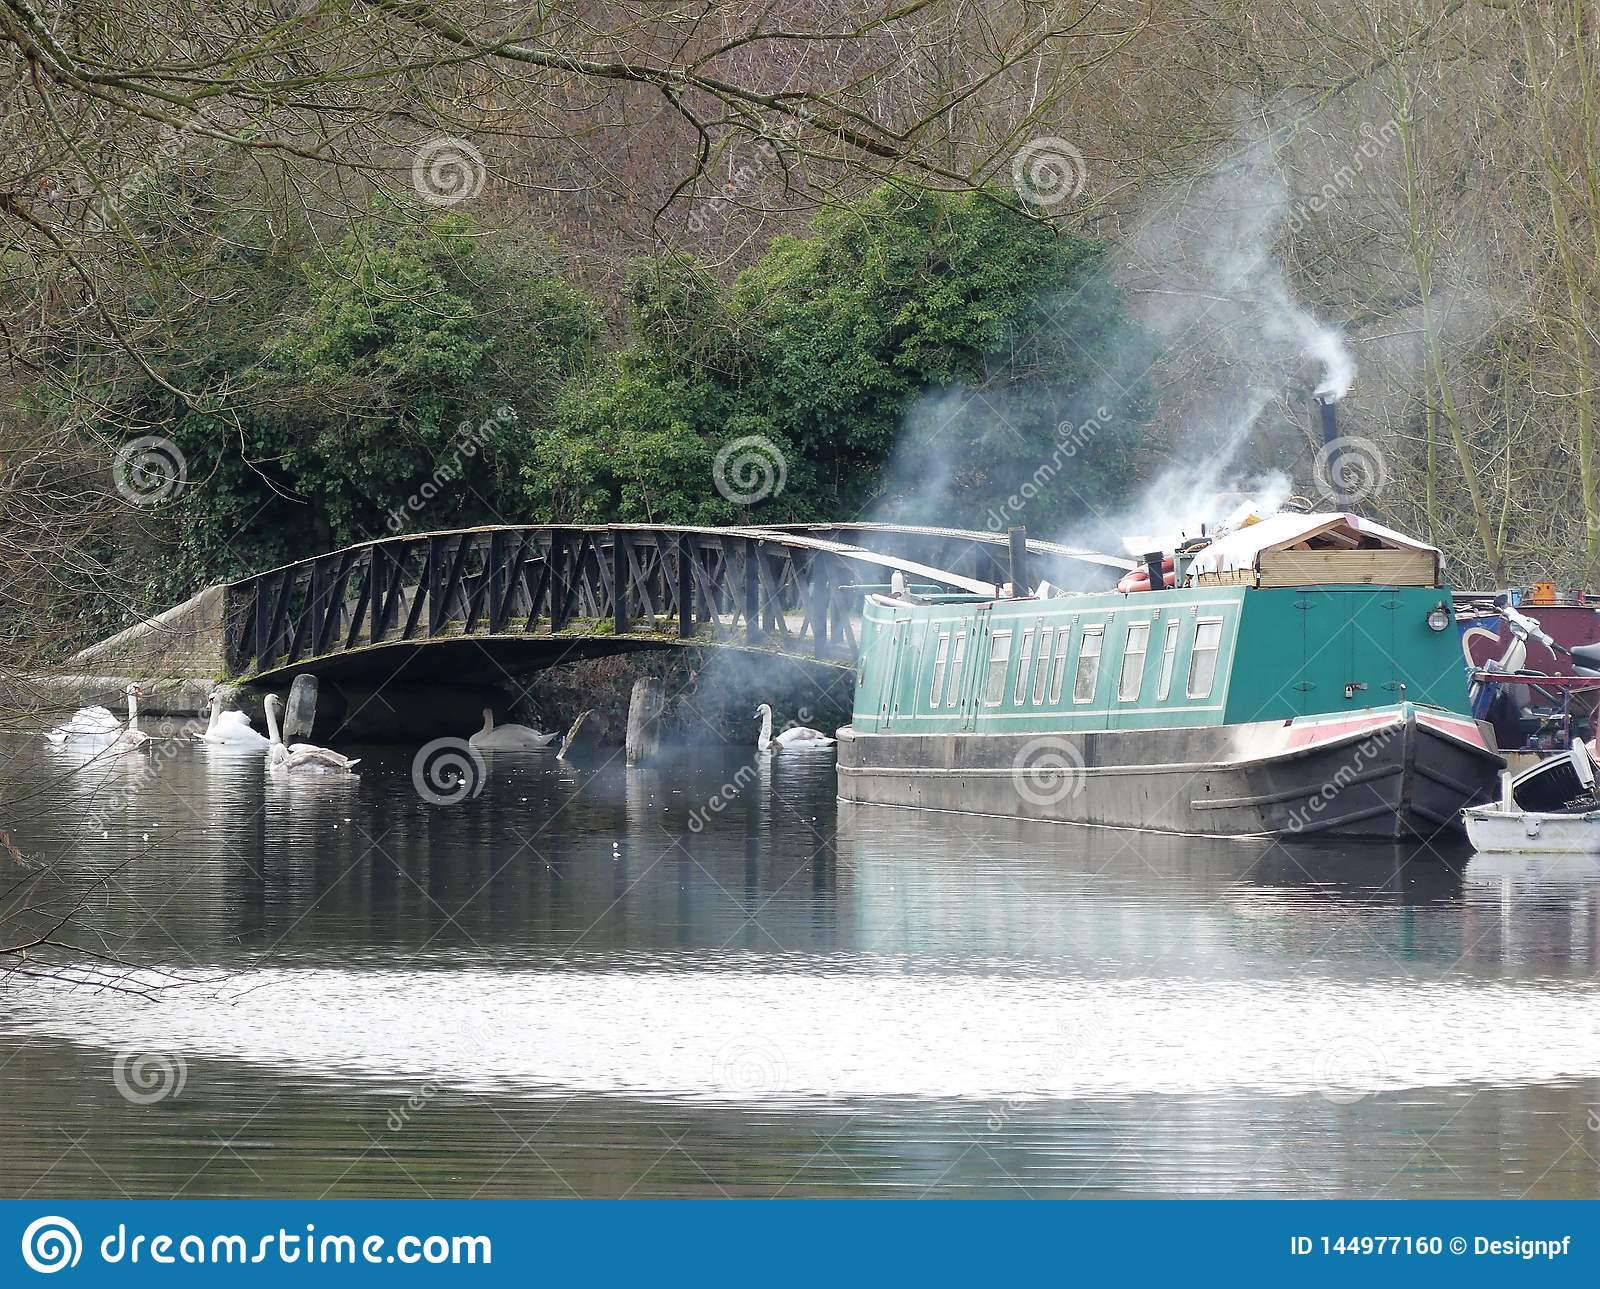 Narrowboat on the Grand Union Canal at Rickmansworth